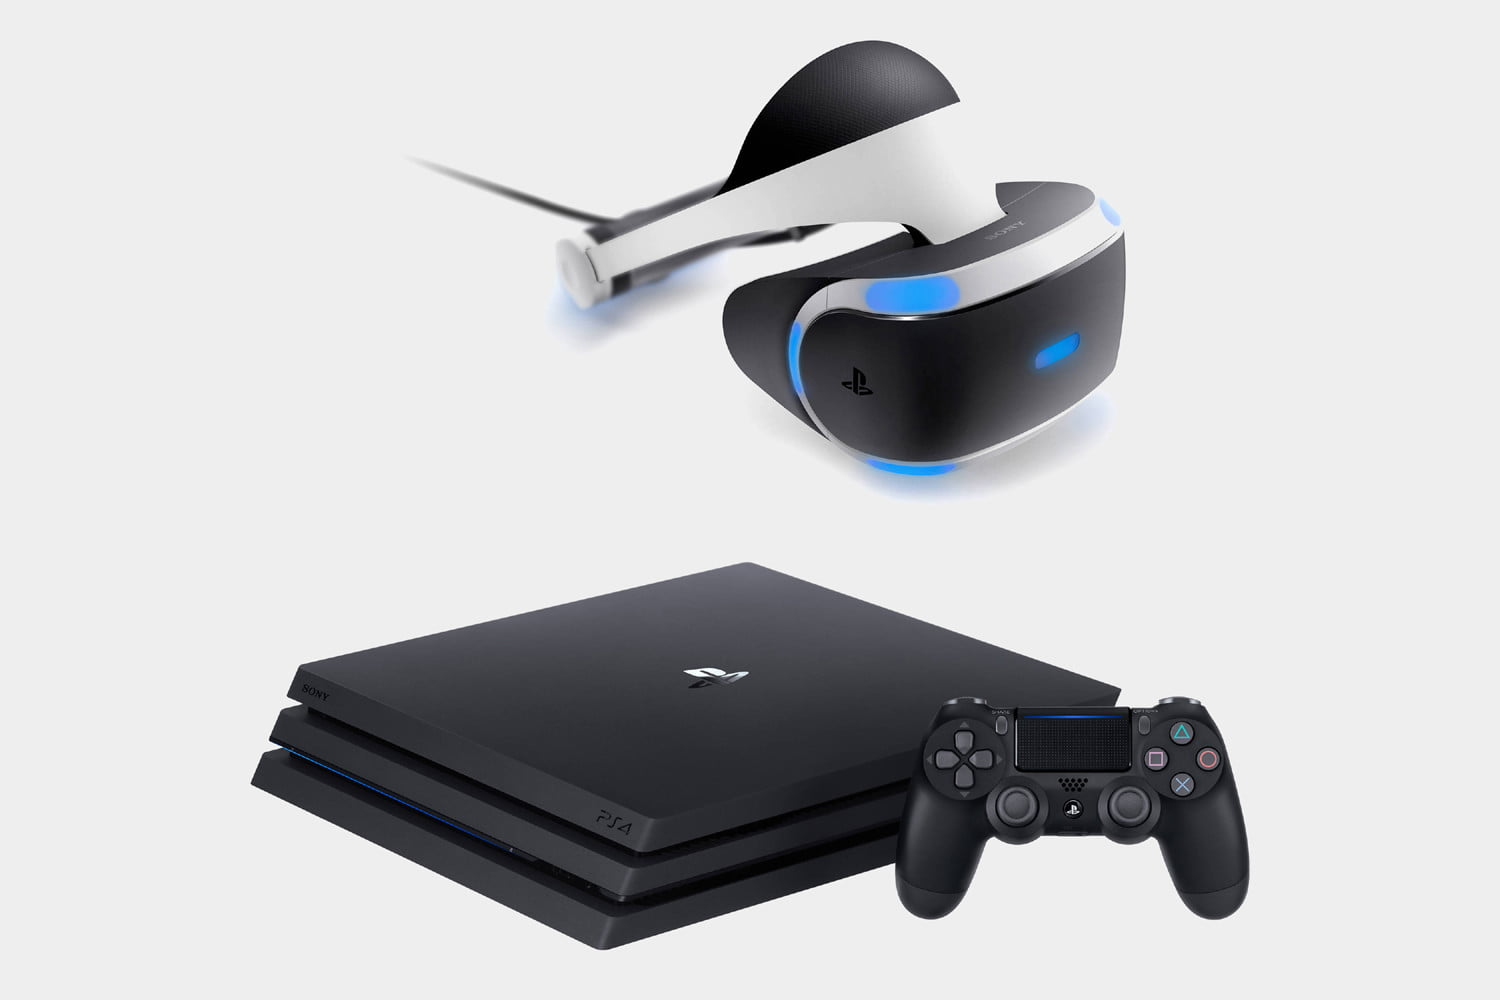 Playstation 5 Release Date And Details Leaked Psvr 2 In The Works